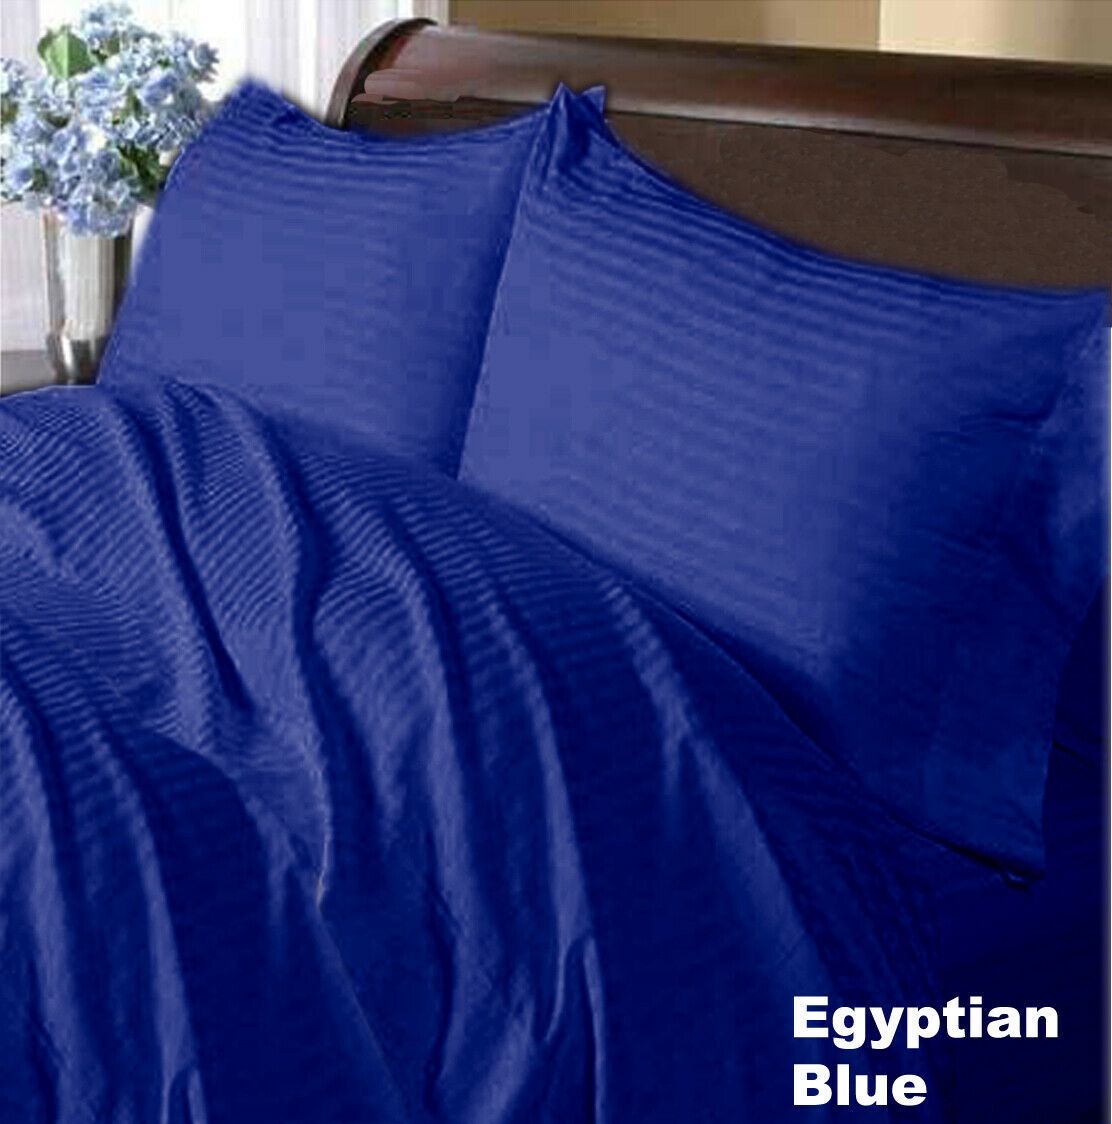 Choose Bedding Linen 1000 Thread Count Egyptian Cotton AU Egyptian blu Striped